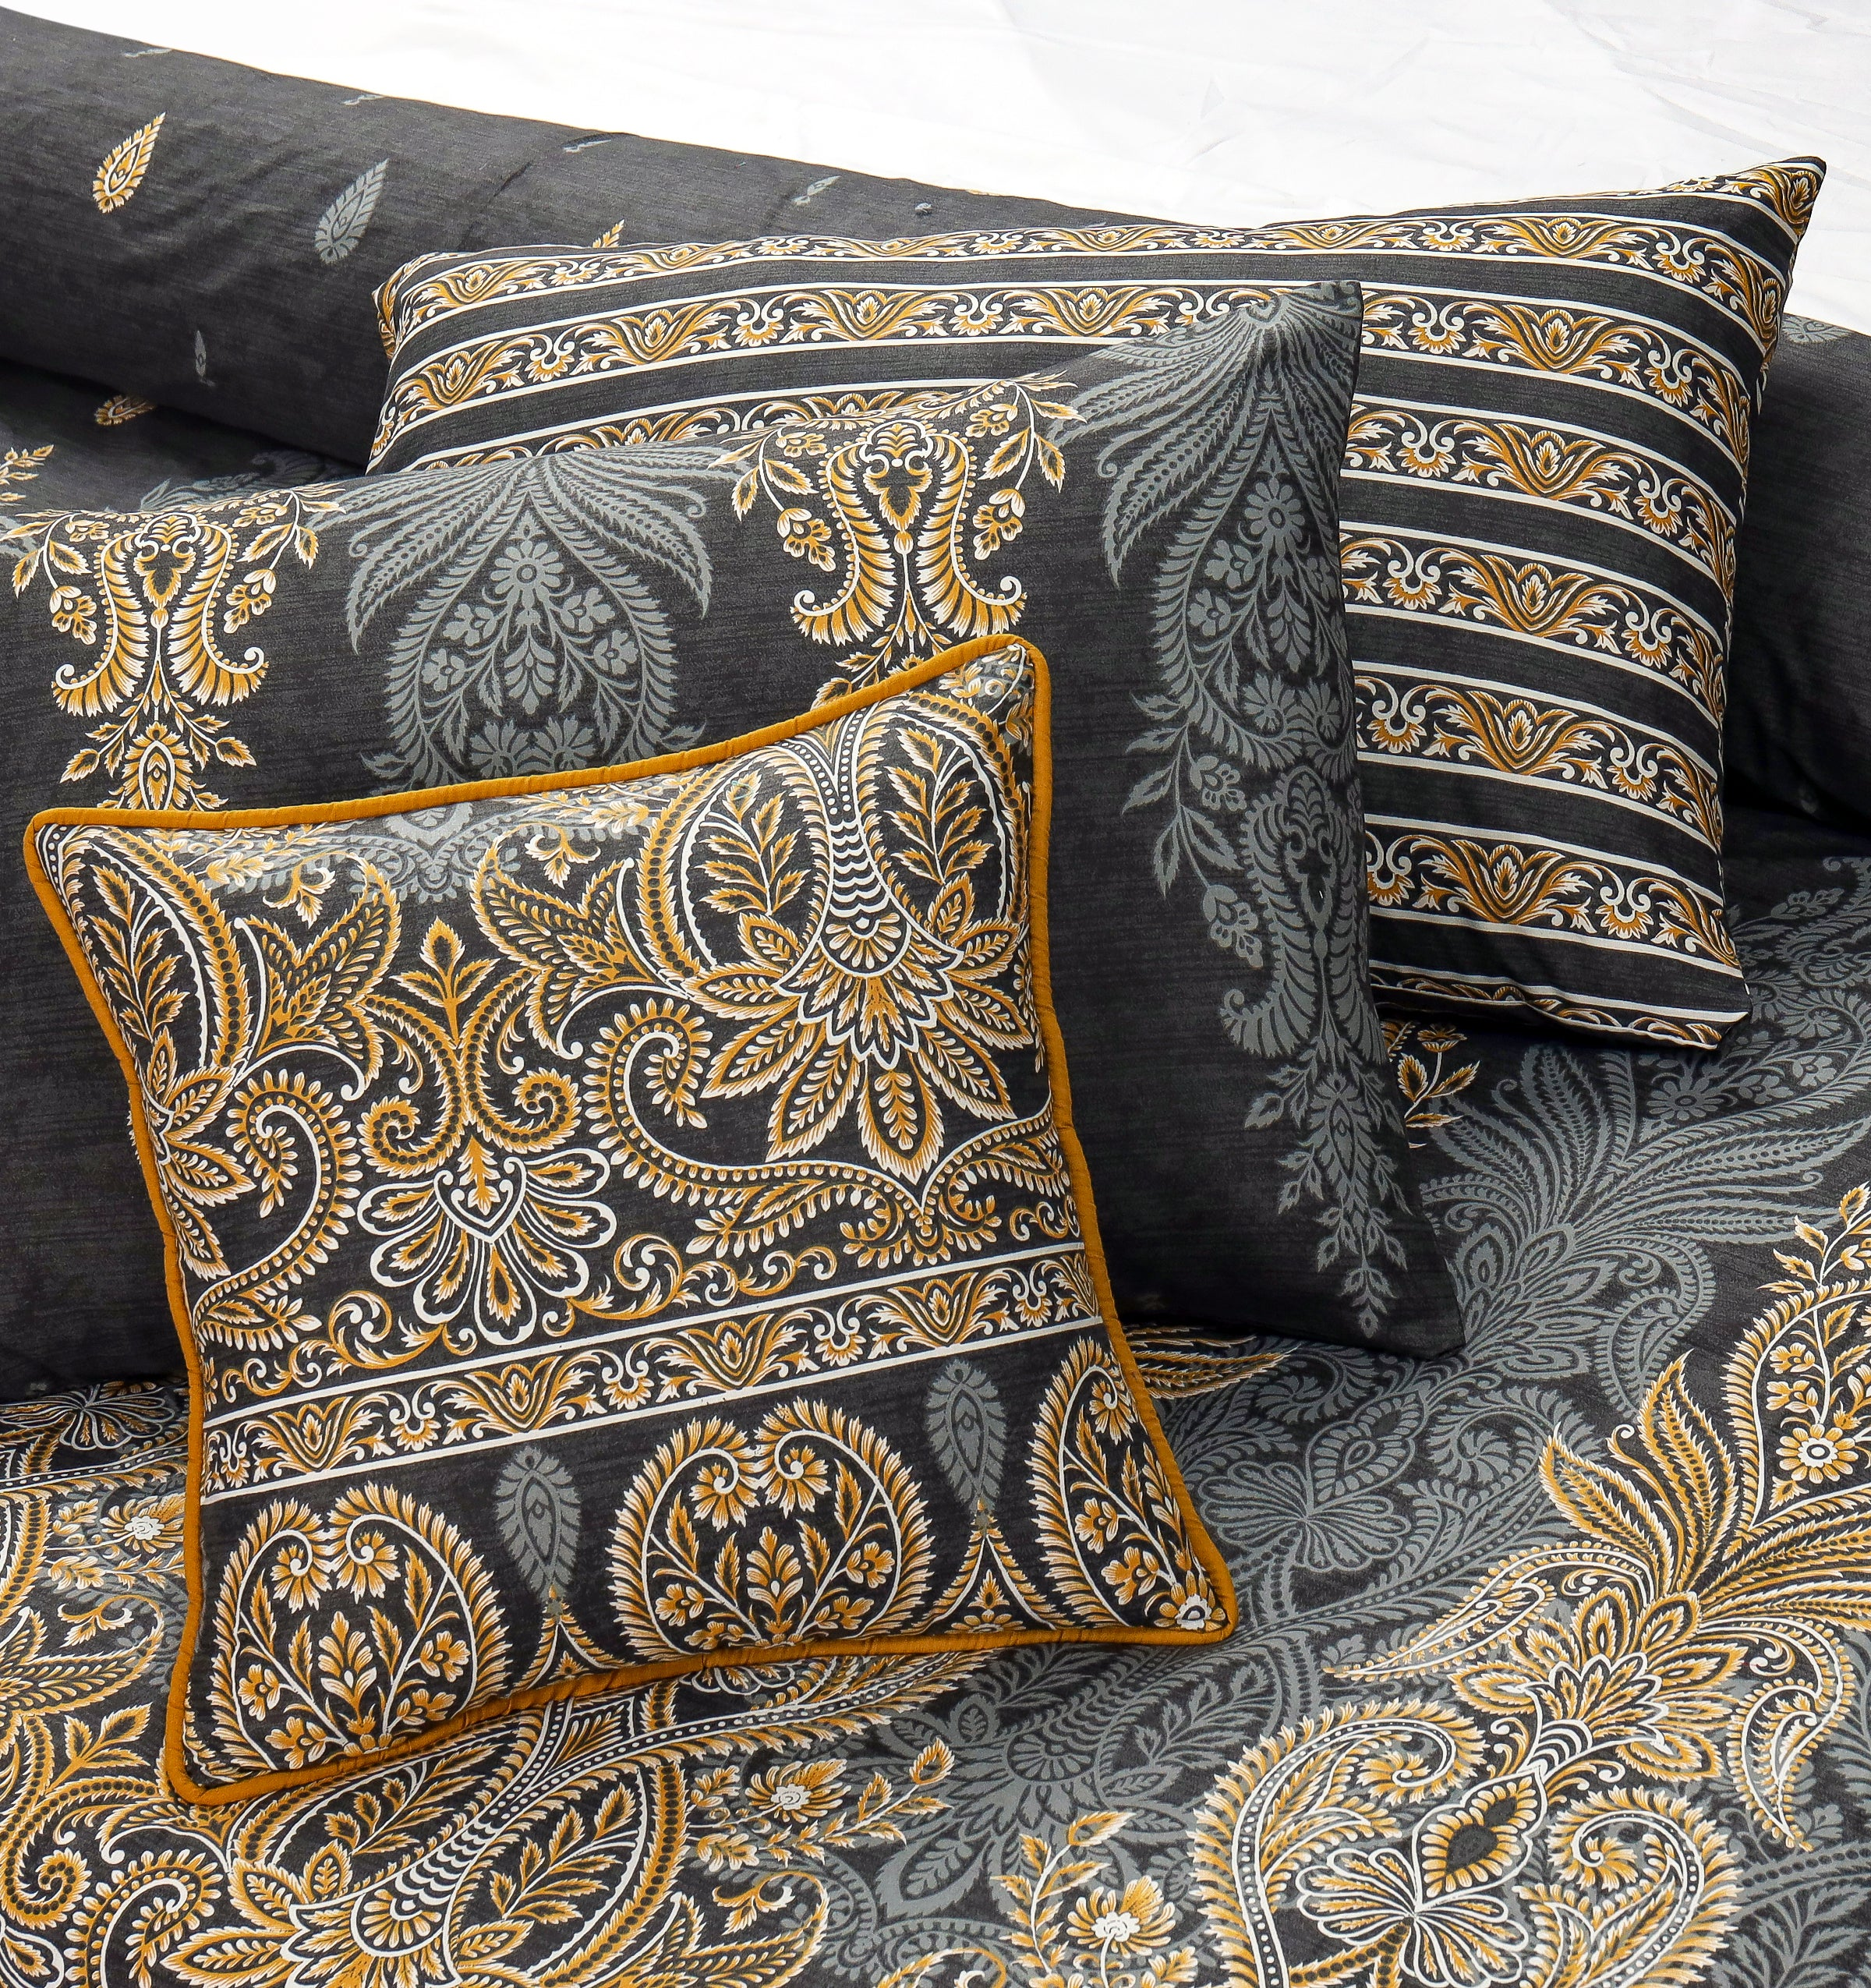 4 Pillows King Cotton Bed Sheet - Golden Empires